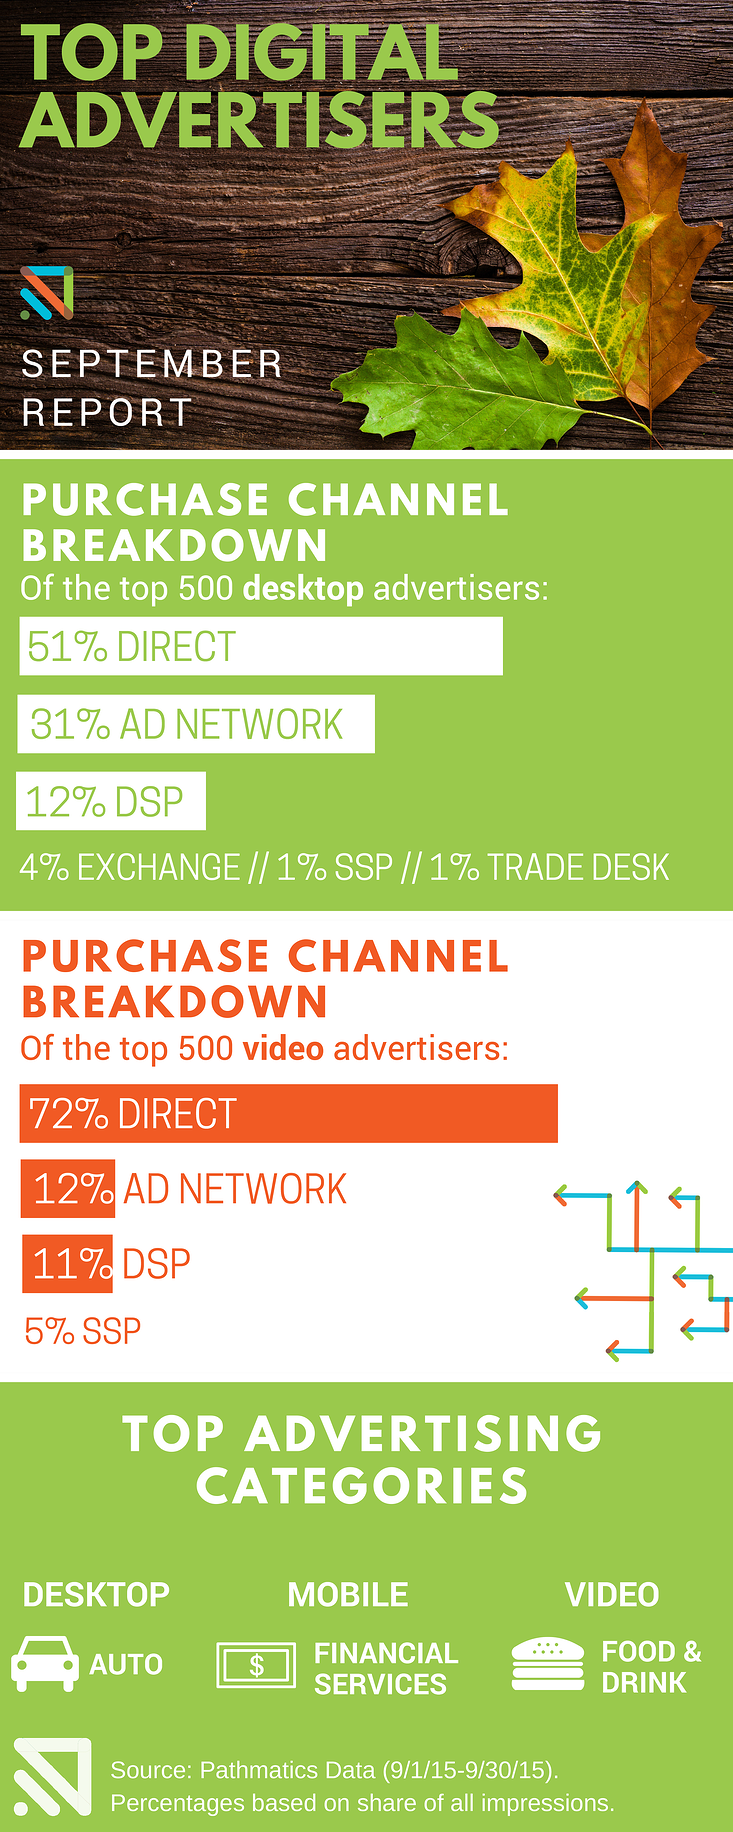 Sept-Top-ADVERTISERS-infographic.png